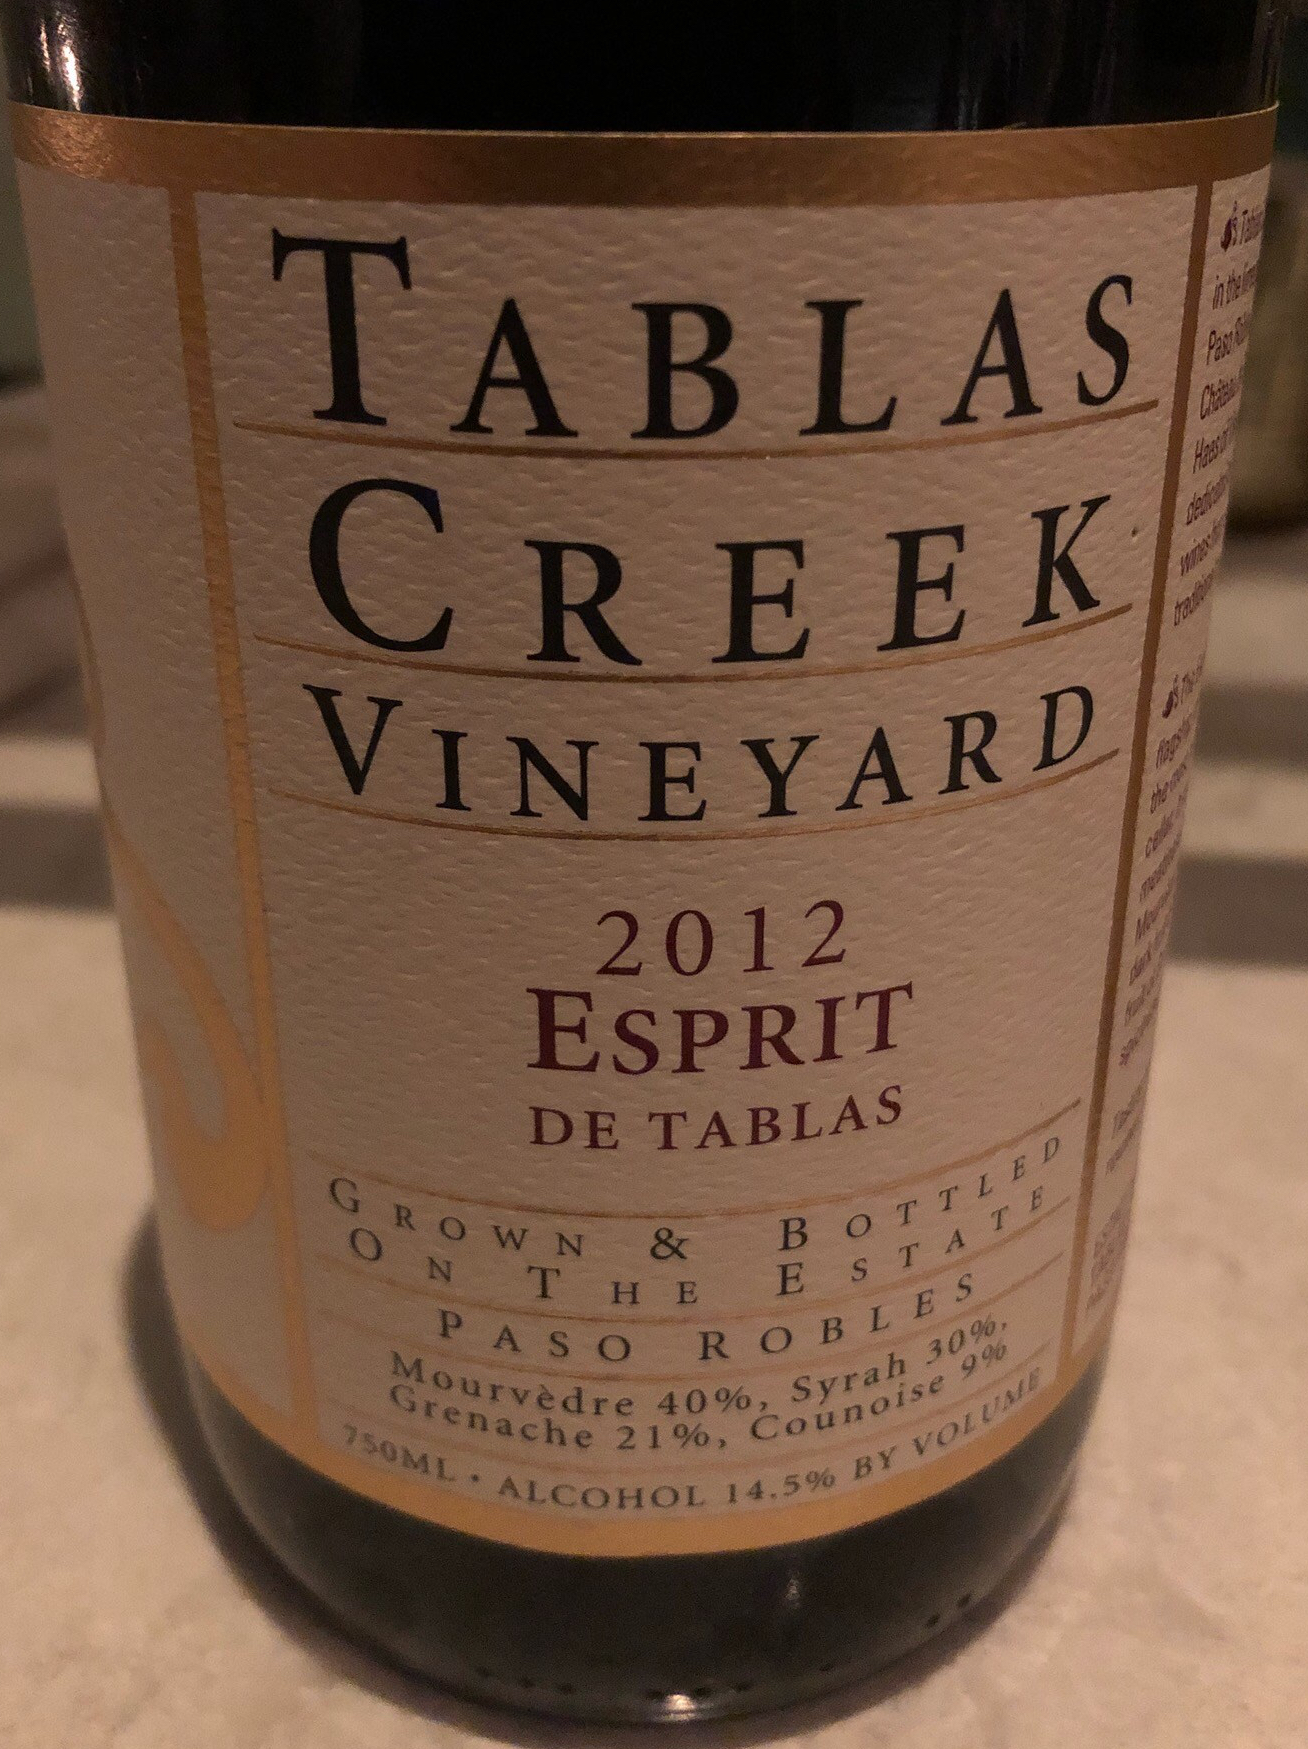 Tablas creek, esprit 2012